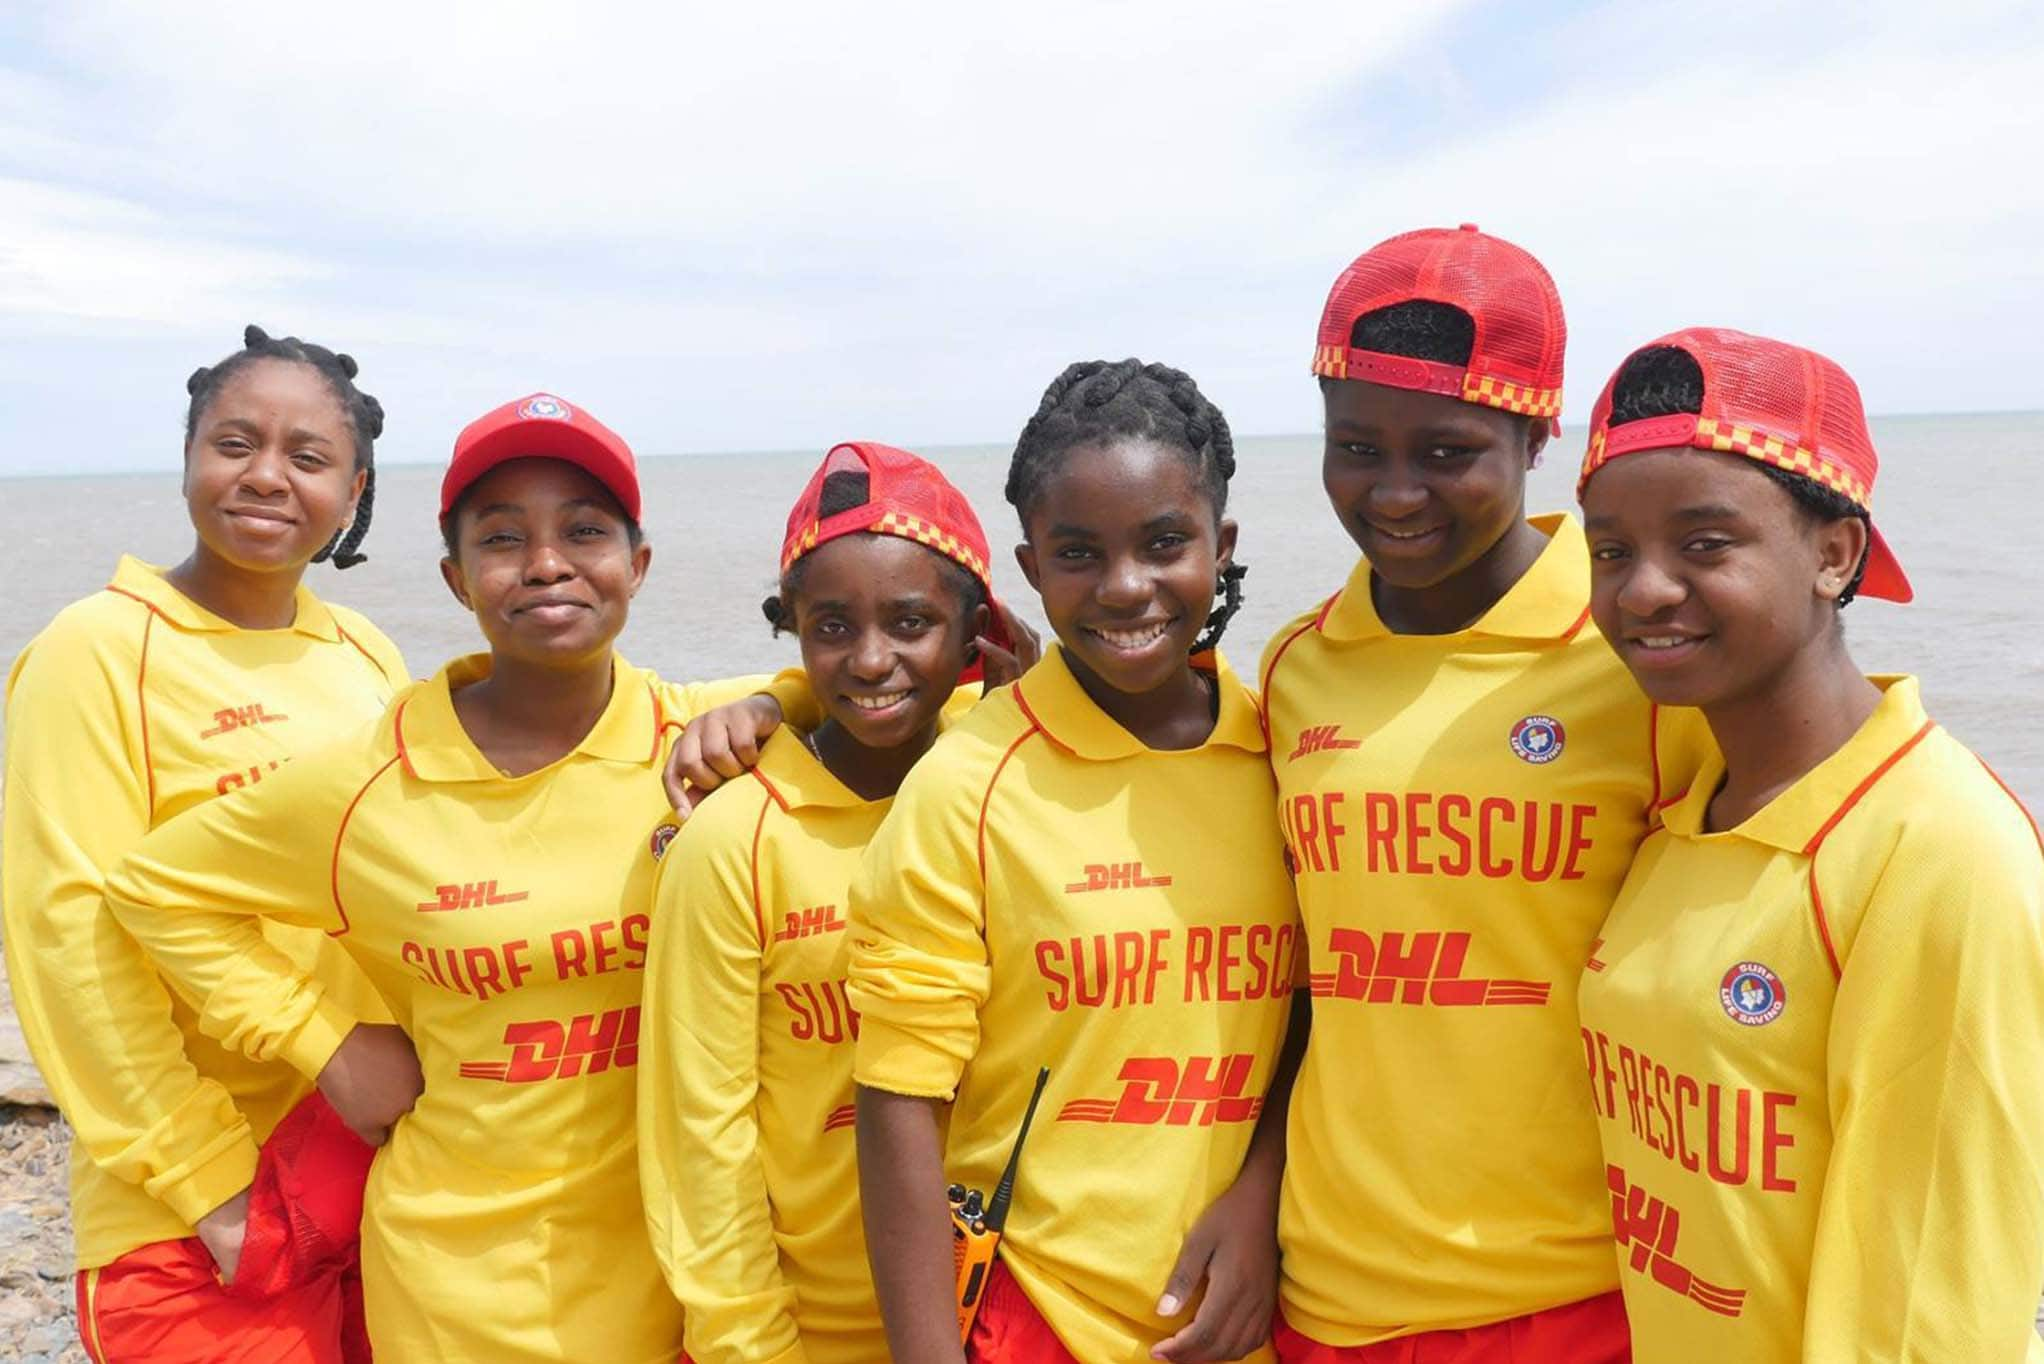 Image of a group of young girls in surf life saving uniforms at the beach.